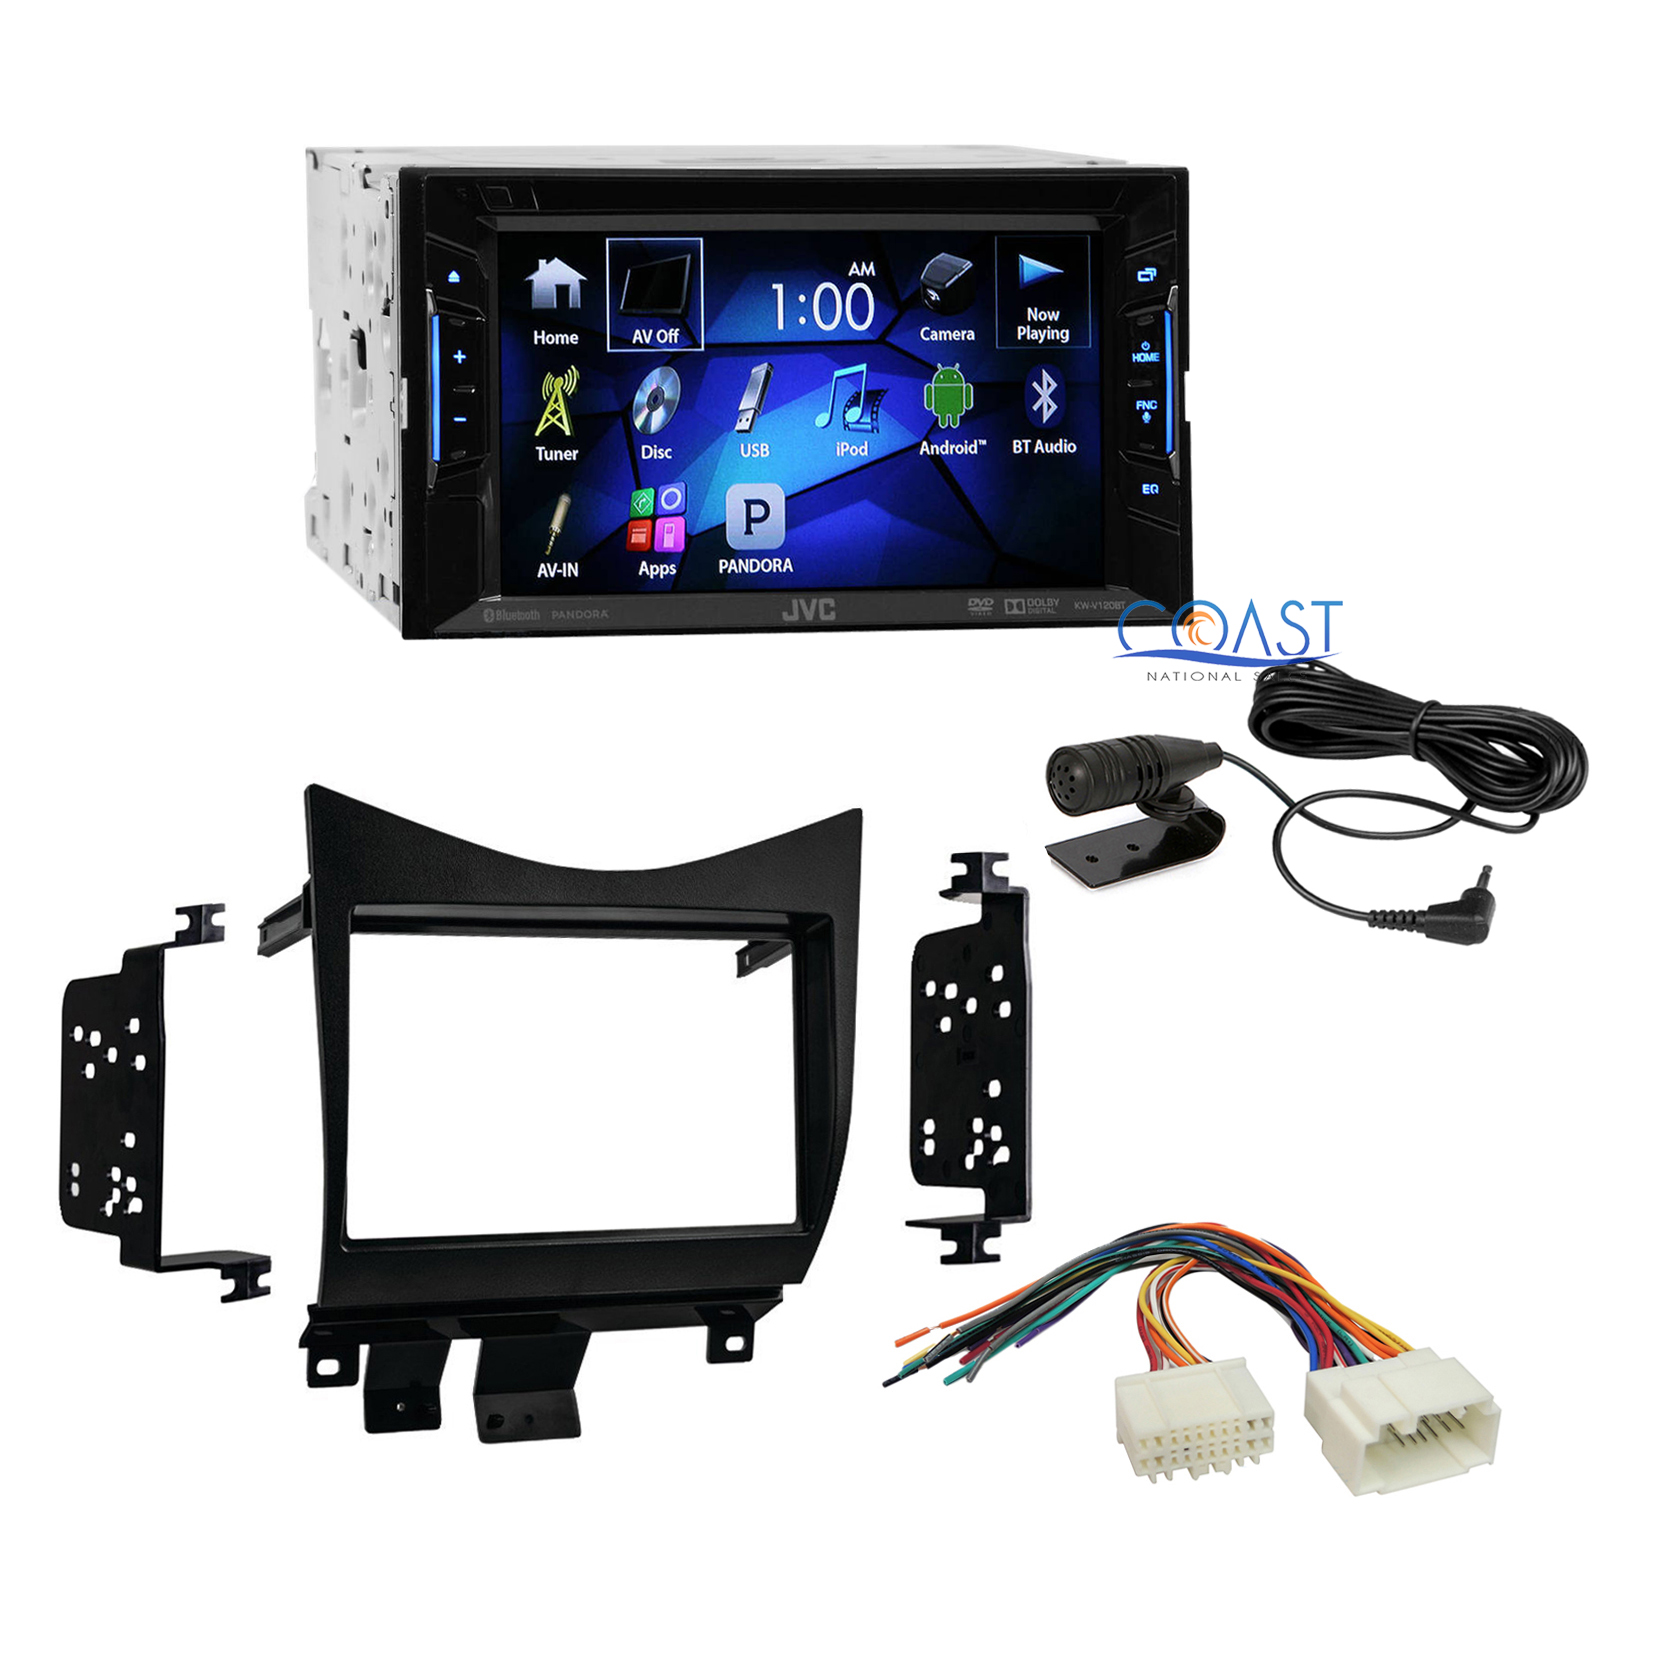 jvc car radio stereo double din dash kit harness for 2003. Black Bedroom Furniture Sets. Home Design Ideas